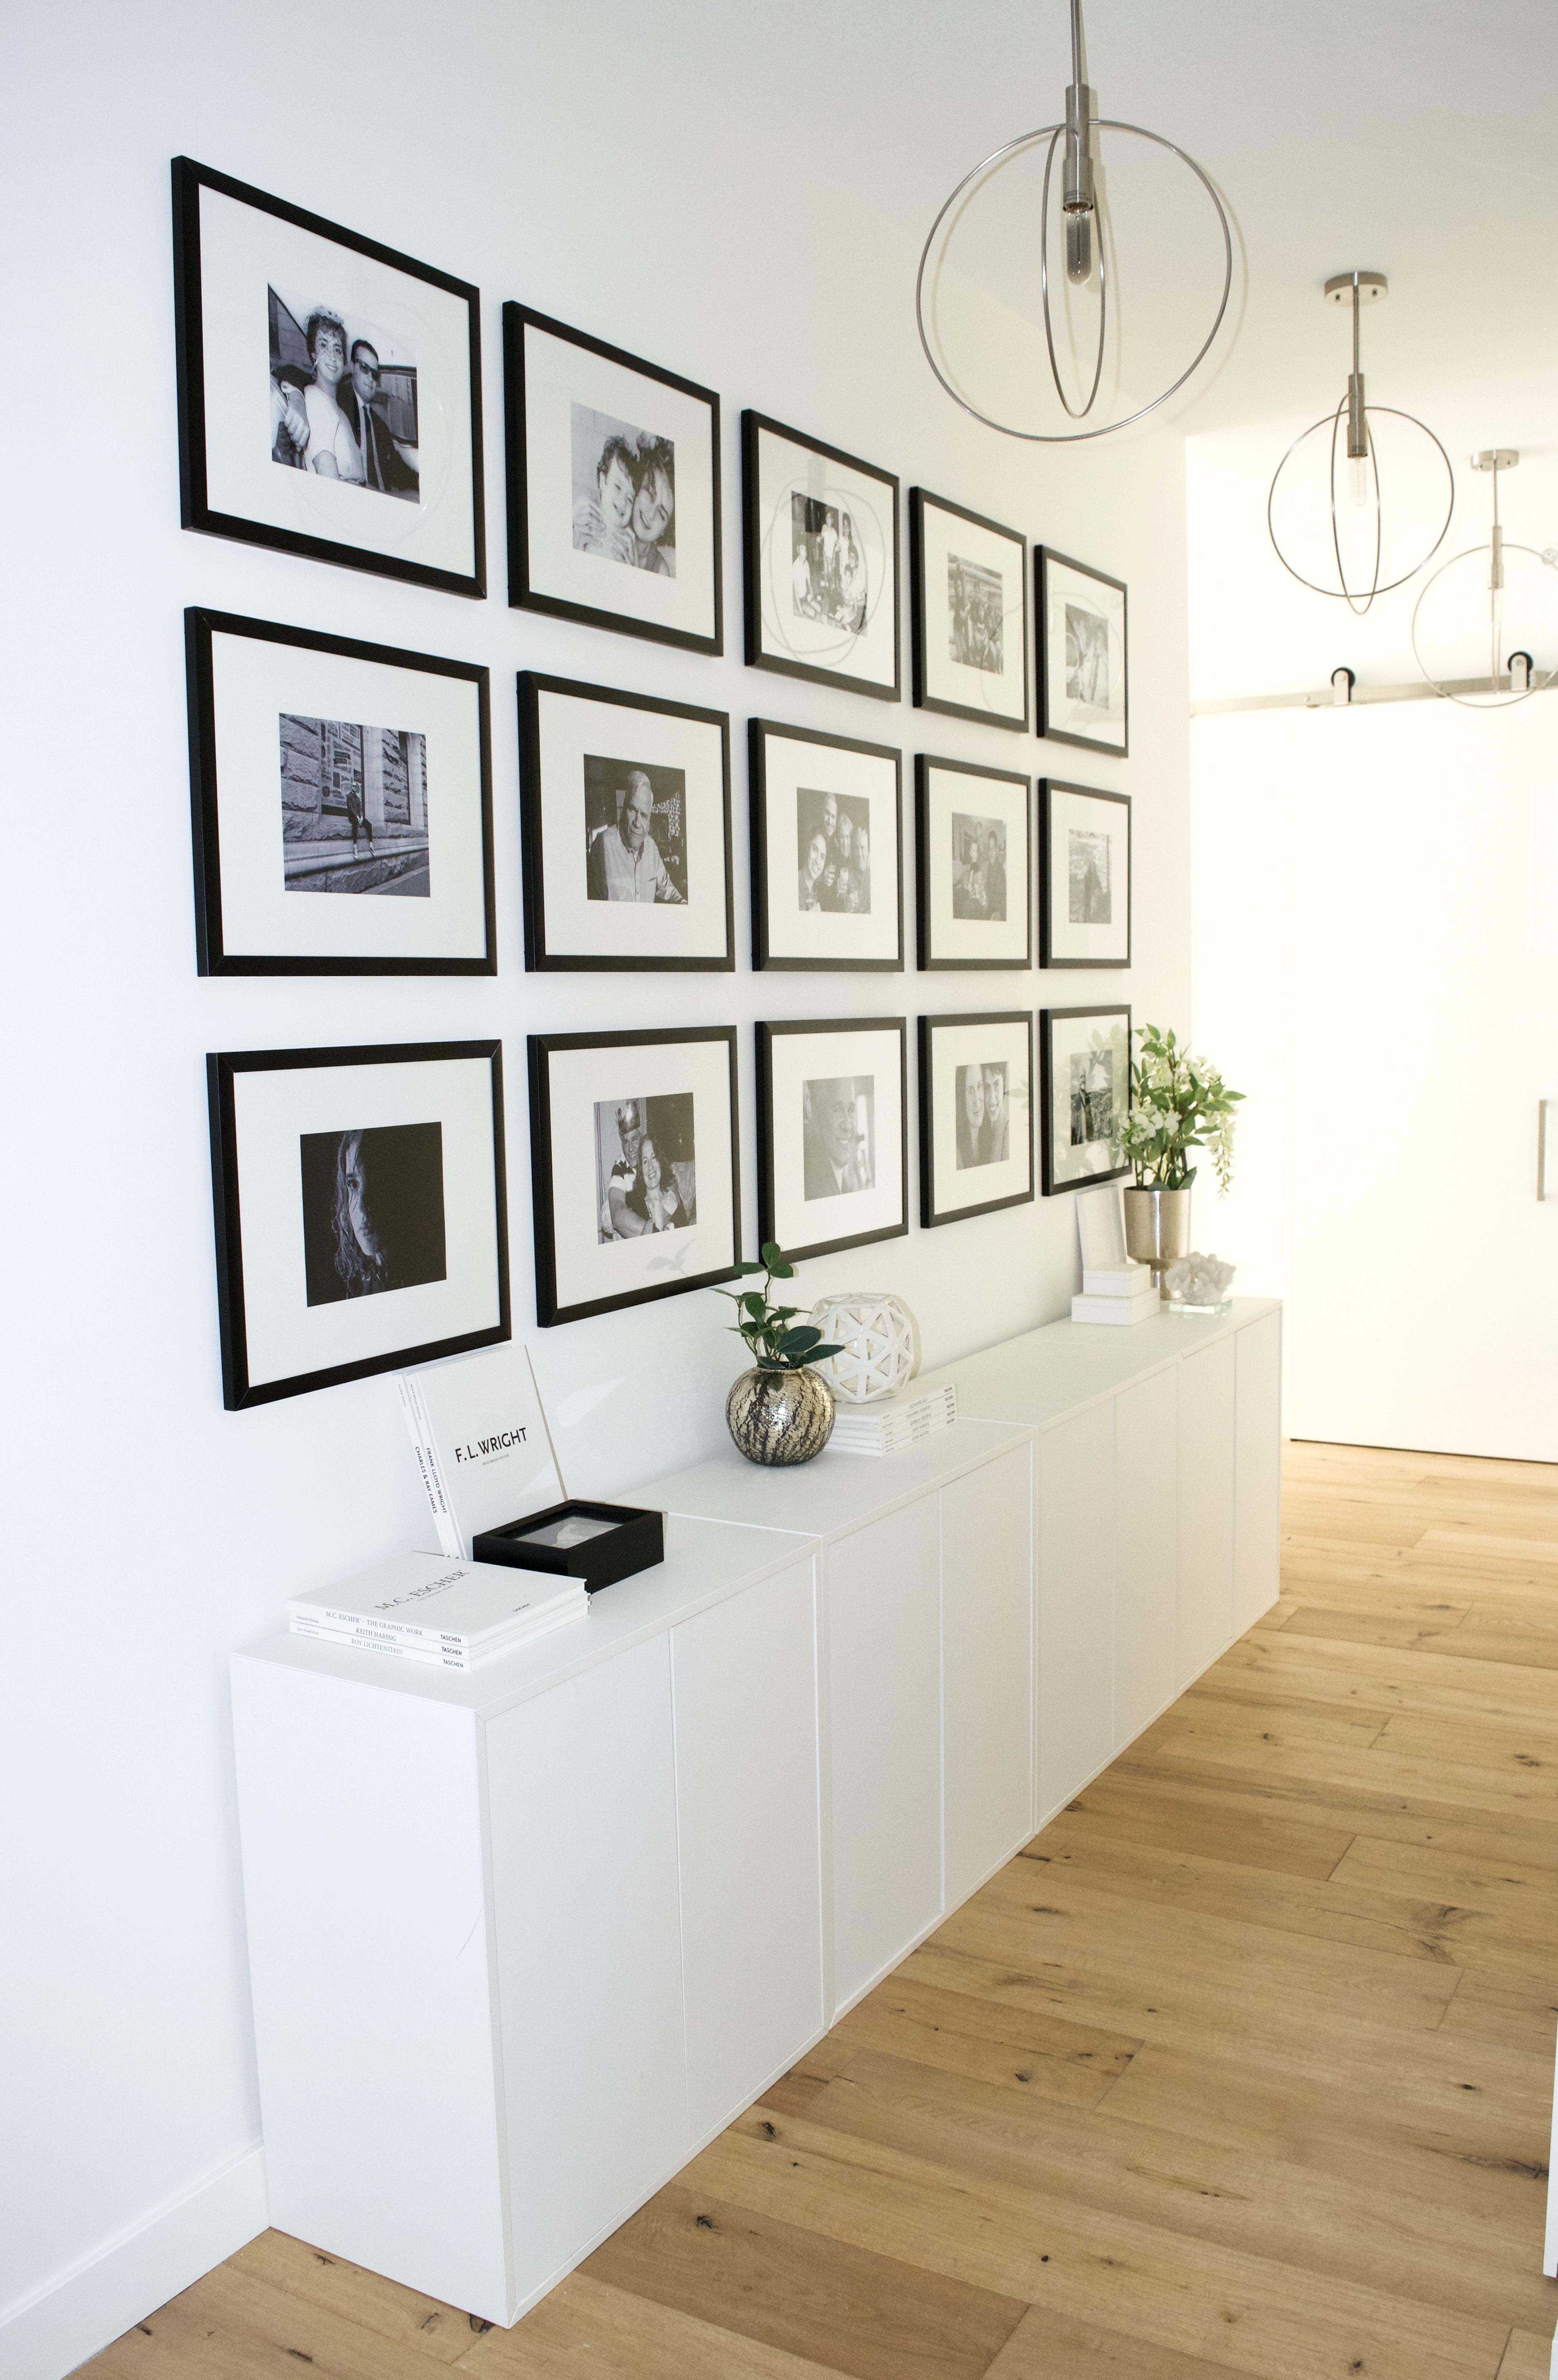 hallway entry gallery wall floor to ceiling white cabinets black frames glam scandinavian ikea oak wood floors white walls